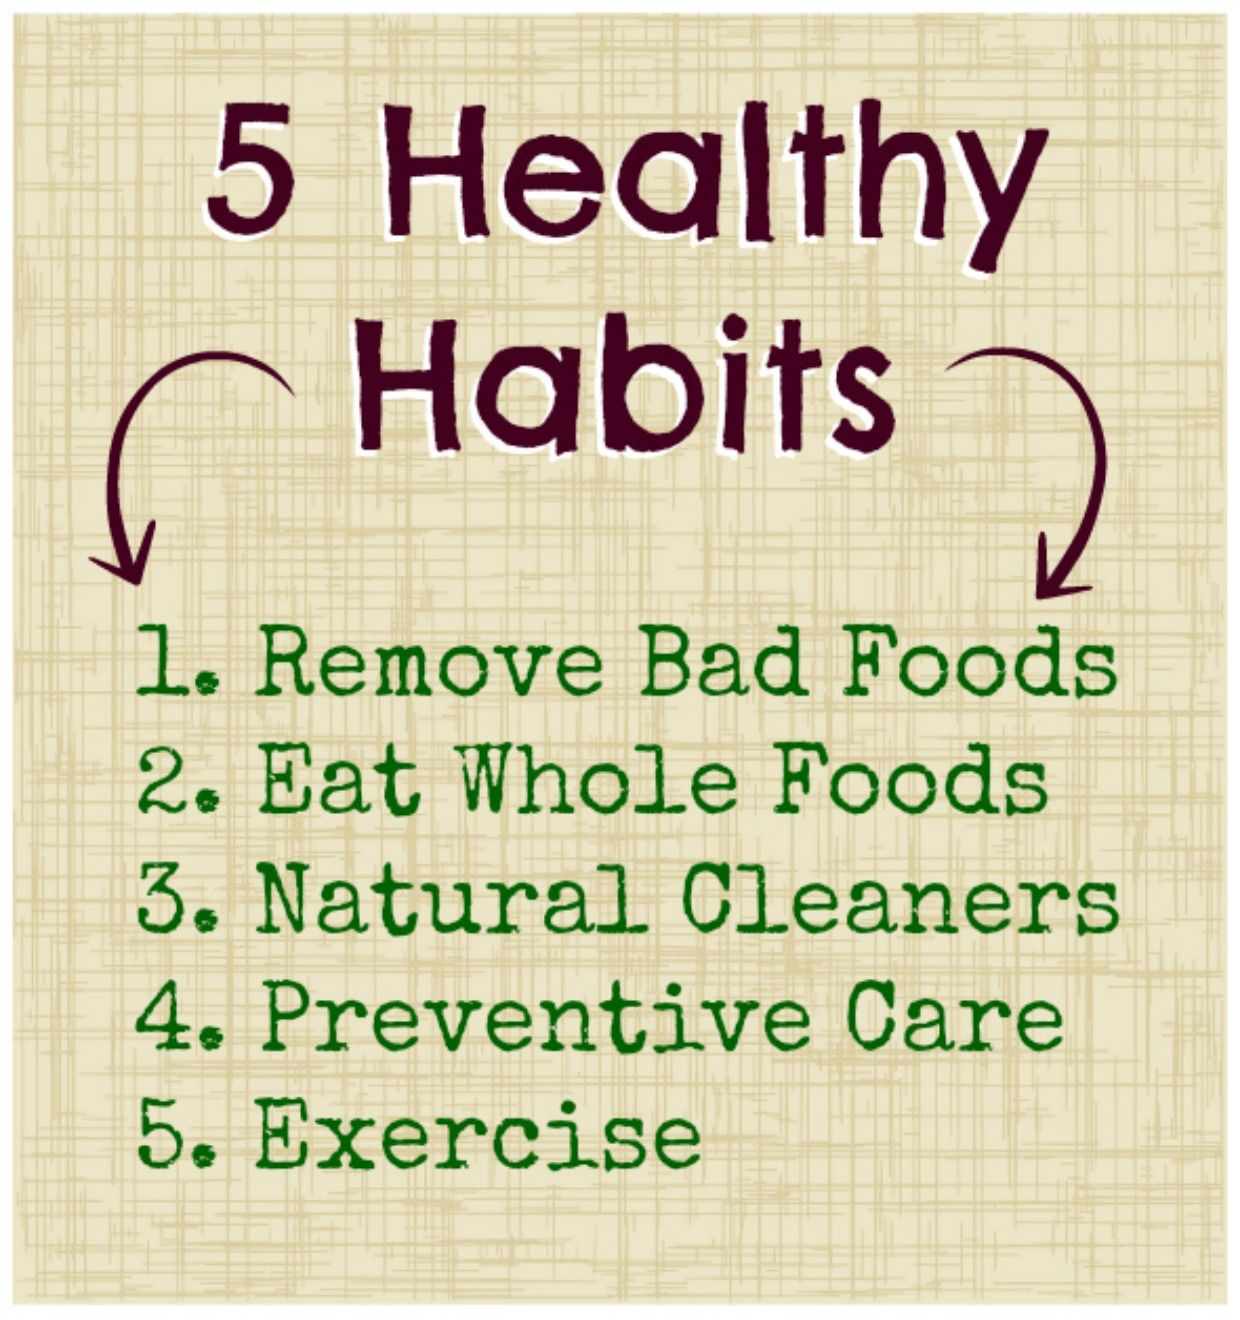 For good health what to eat - 5 Healthy Habits For You Your Family Holiday Edition